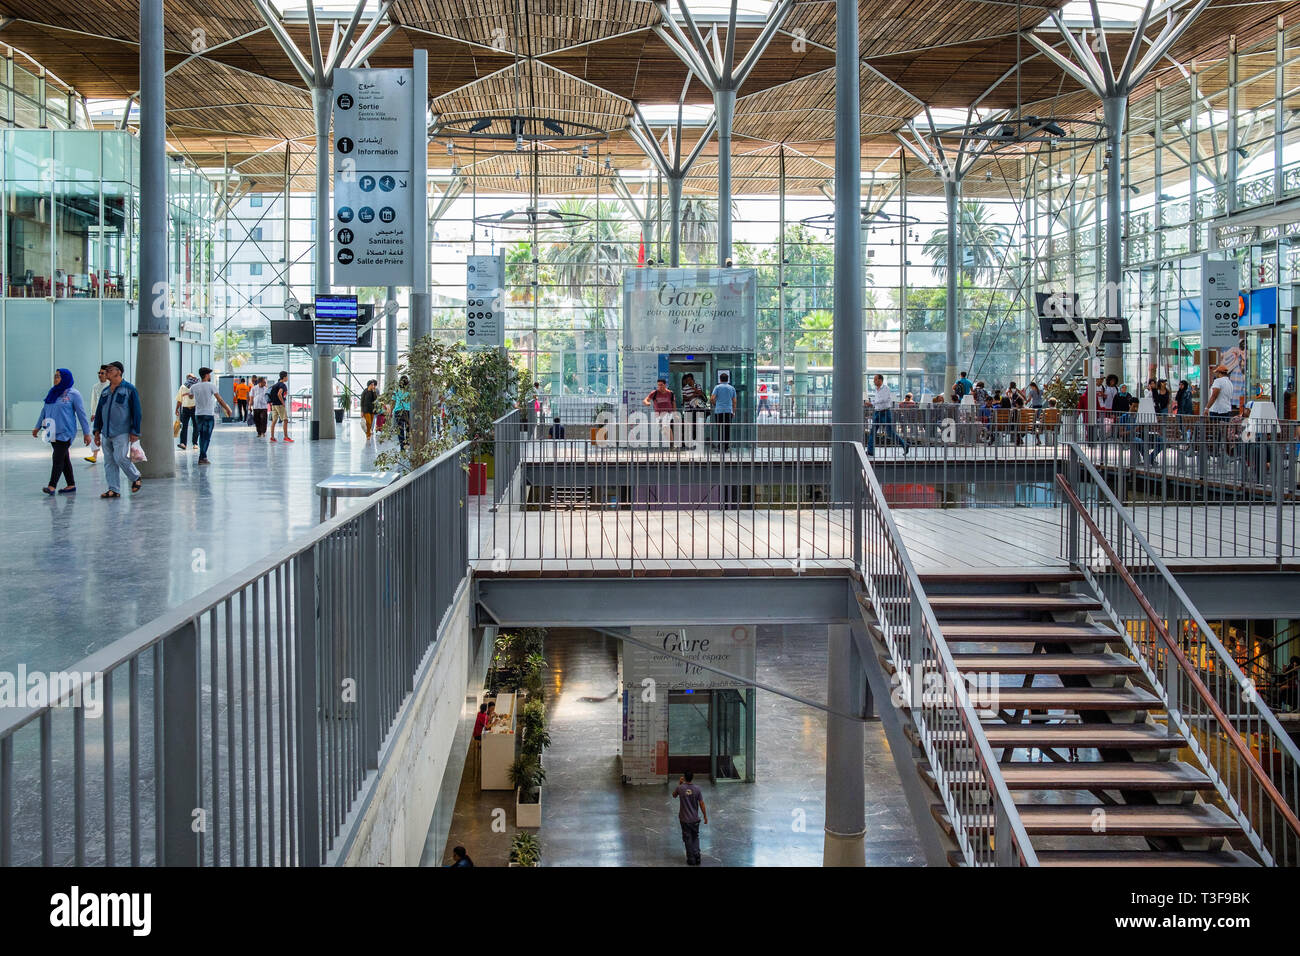 Morocco, Casablanca. Passengers in the new Casa-Port railway station inaugurated in 2014 by King Mohammed VI, built by AREP (French: Amenagement, Rech - Stock Image